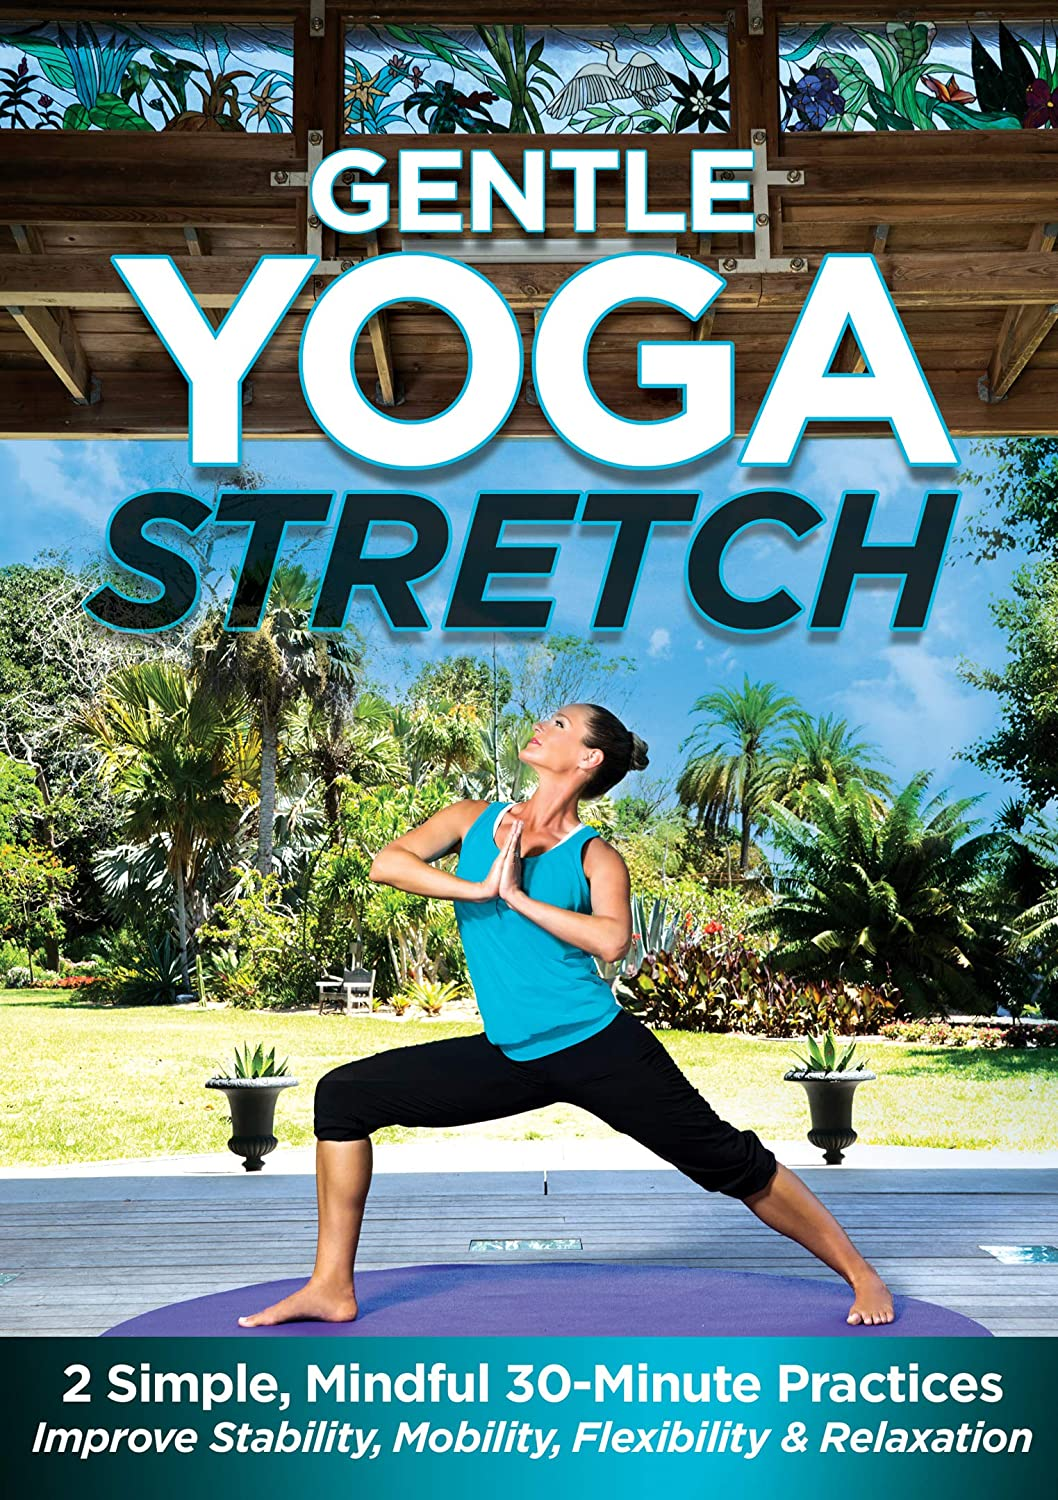 Gentle Yoga Stretch: Rapid rise 2 Simple Im Super special price Practices Mindful to 30-Minute